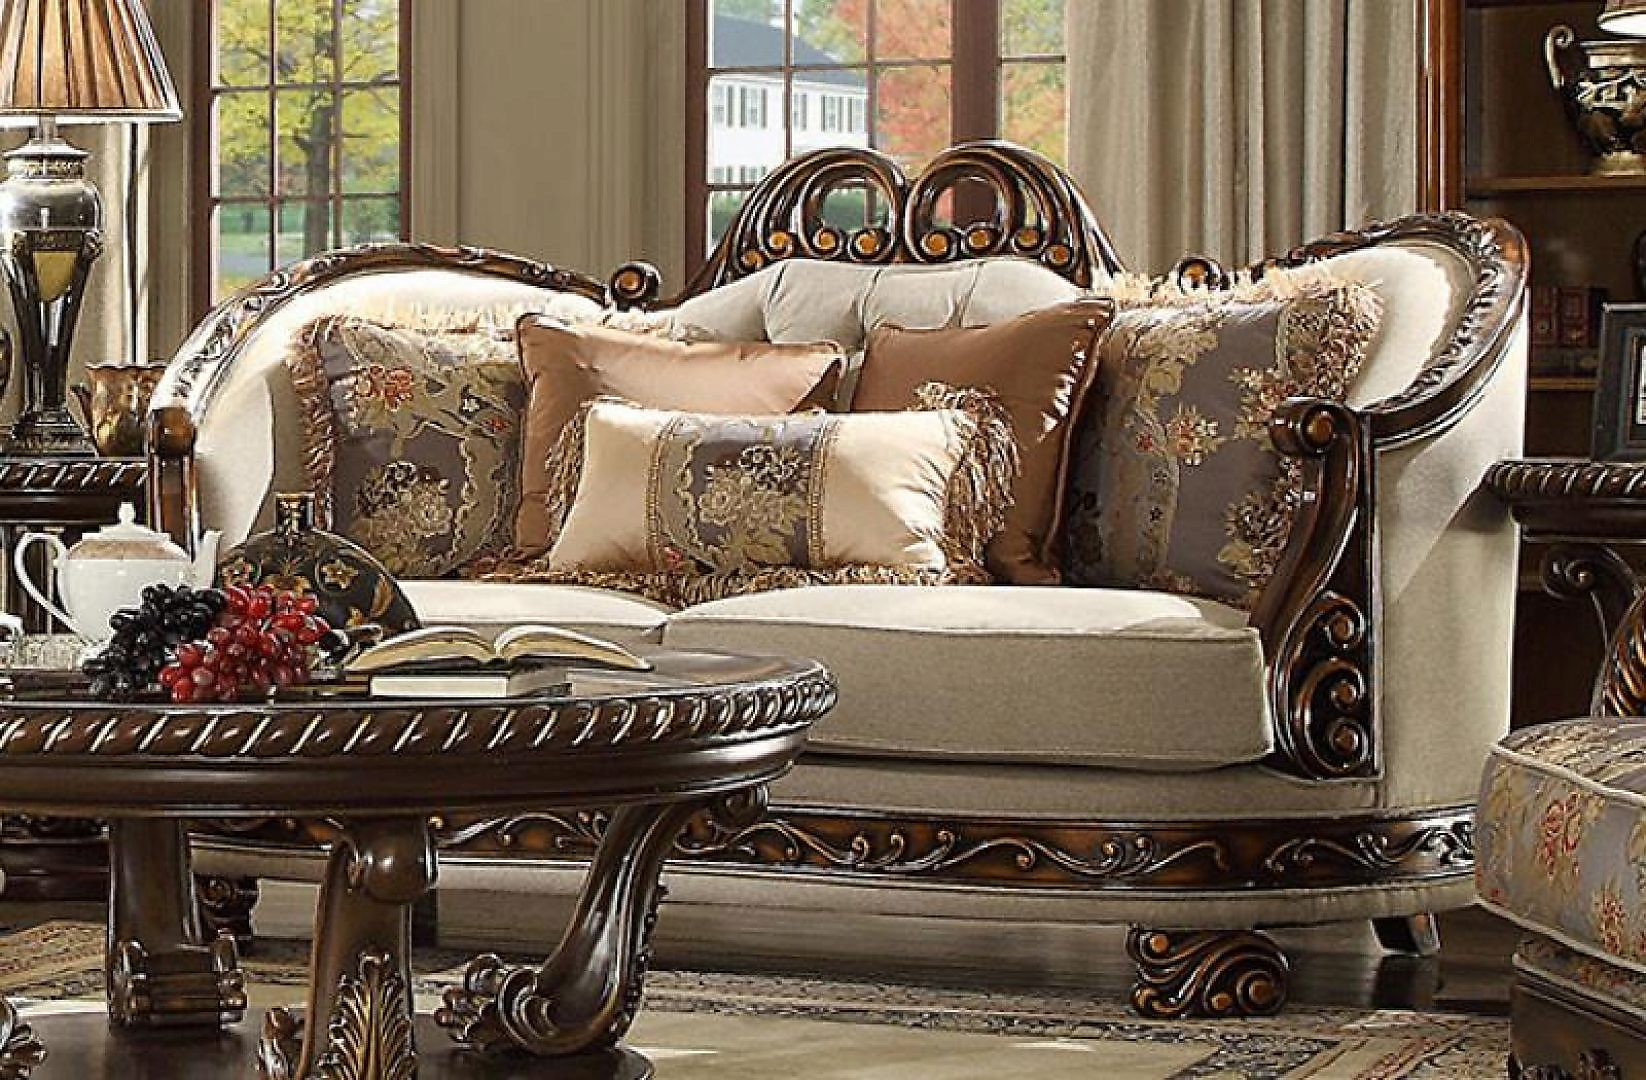 Traditional Luxurious Royal Hd-1623 Sofa in Beige by Homey Design